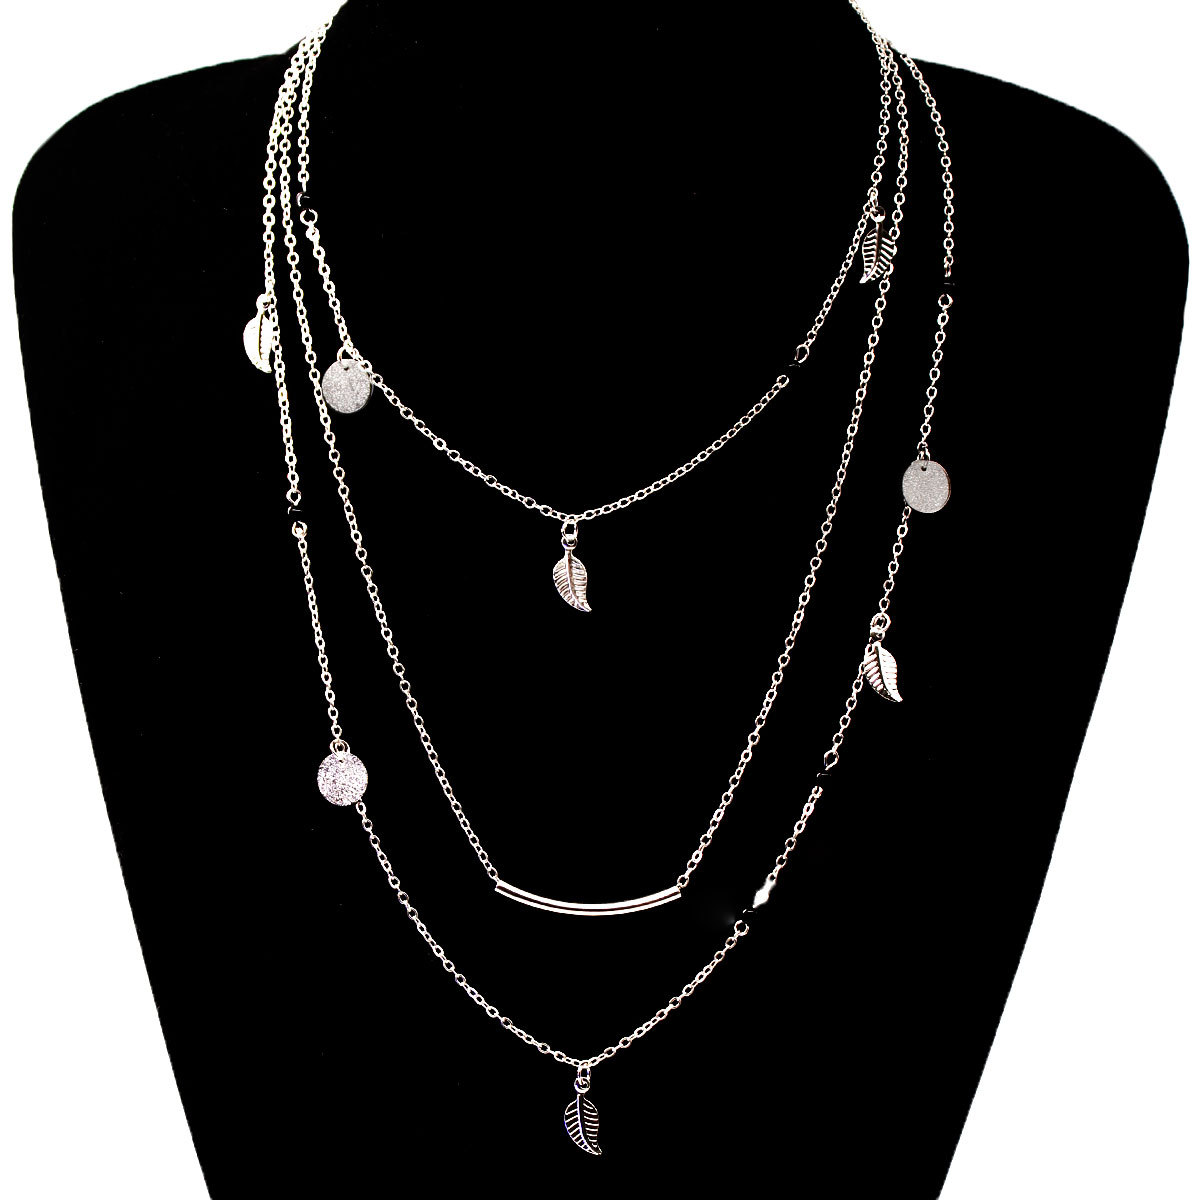 Fashion Sequins Leaf Tassel Pendant Necklace Clavicle Long Chain Choker Multi-layer